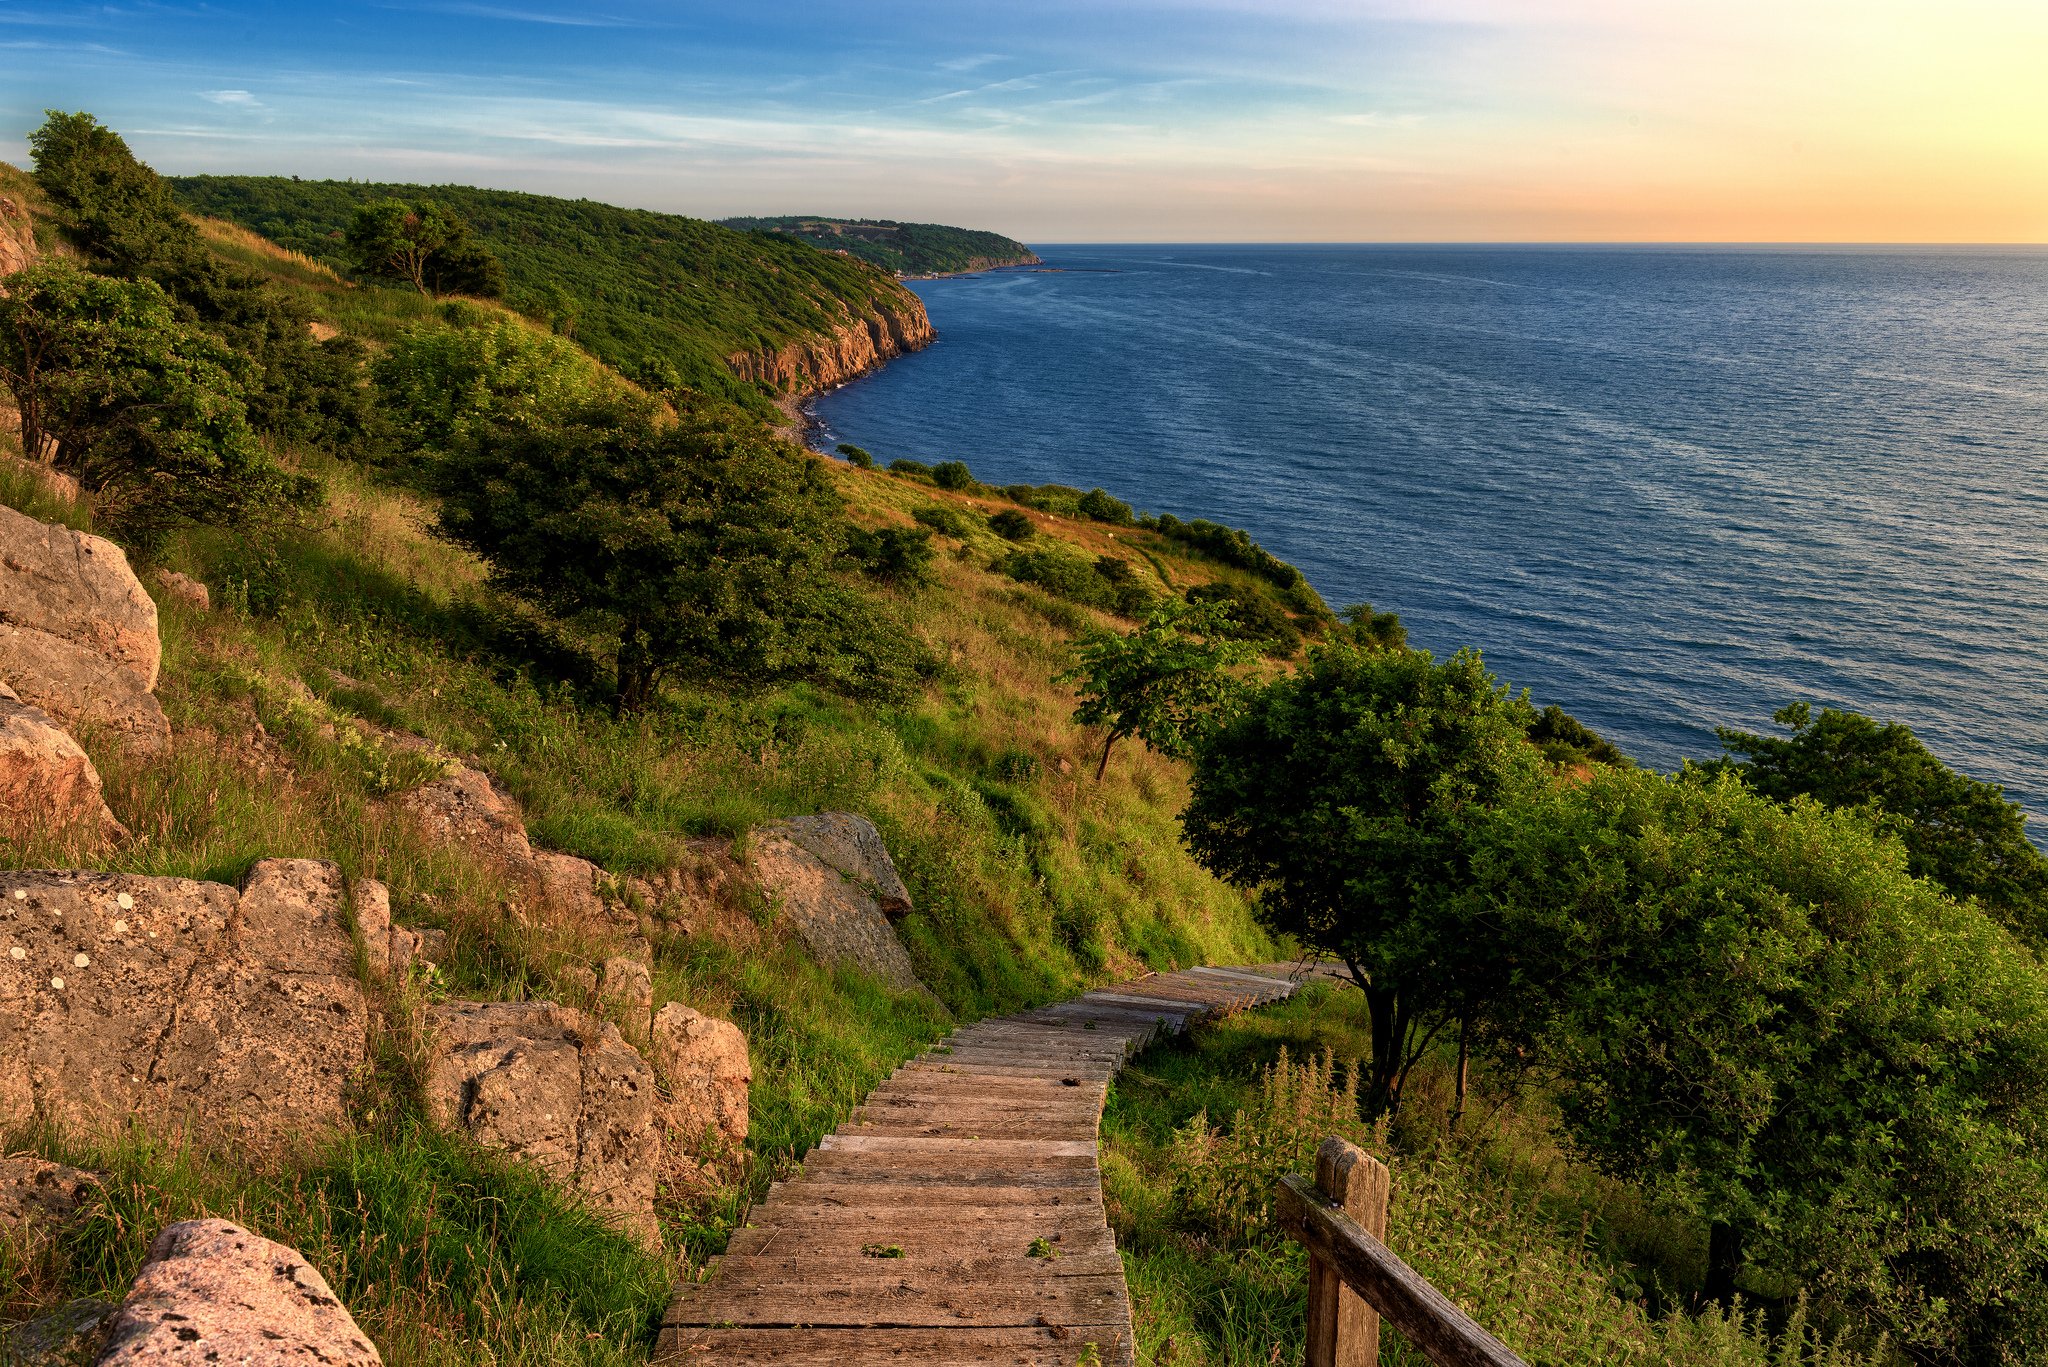 Bornholm offers stunning landscapes and nature